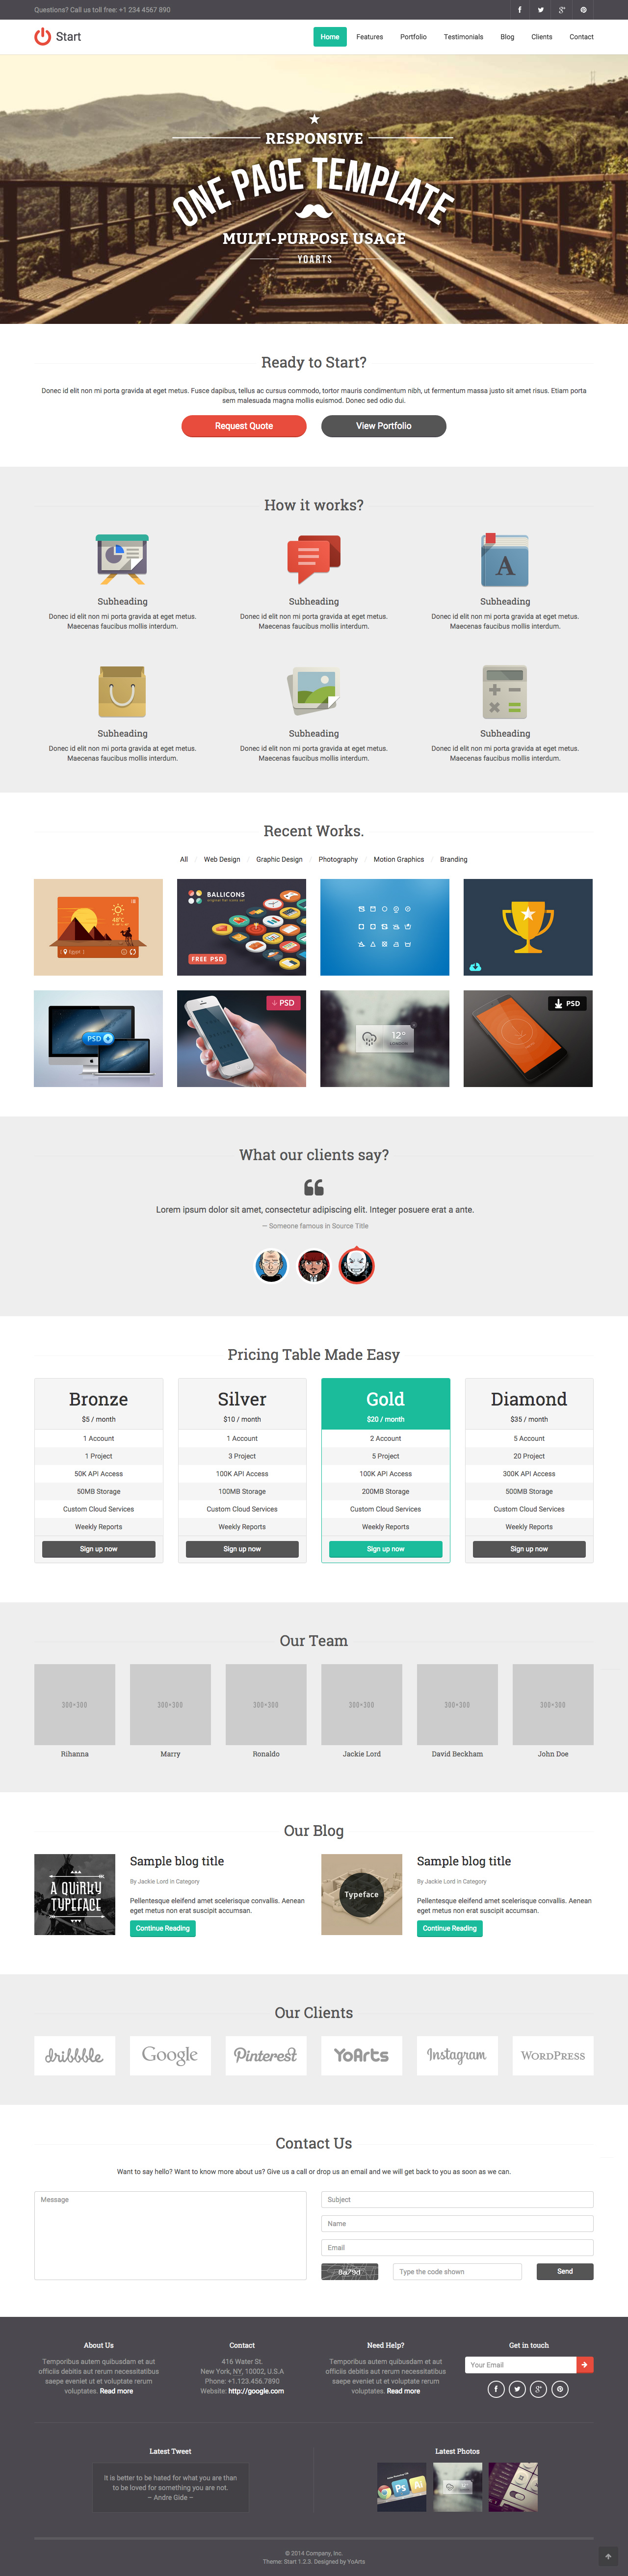 One Page Website Templates おしゃれまとめの人気アイデア Pinterest One Page Love